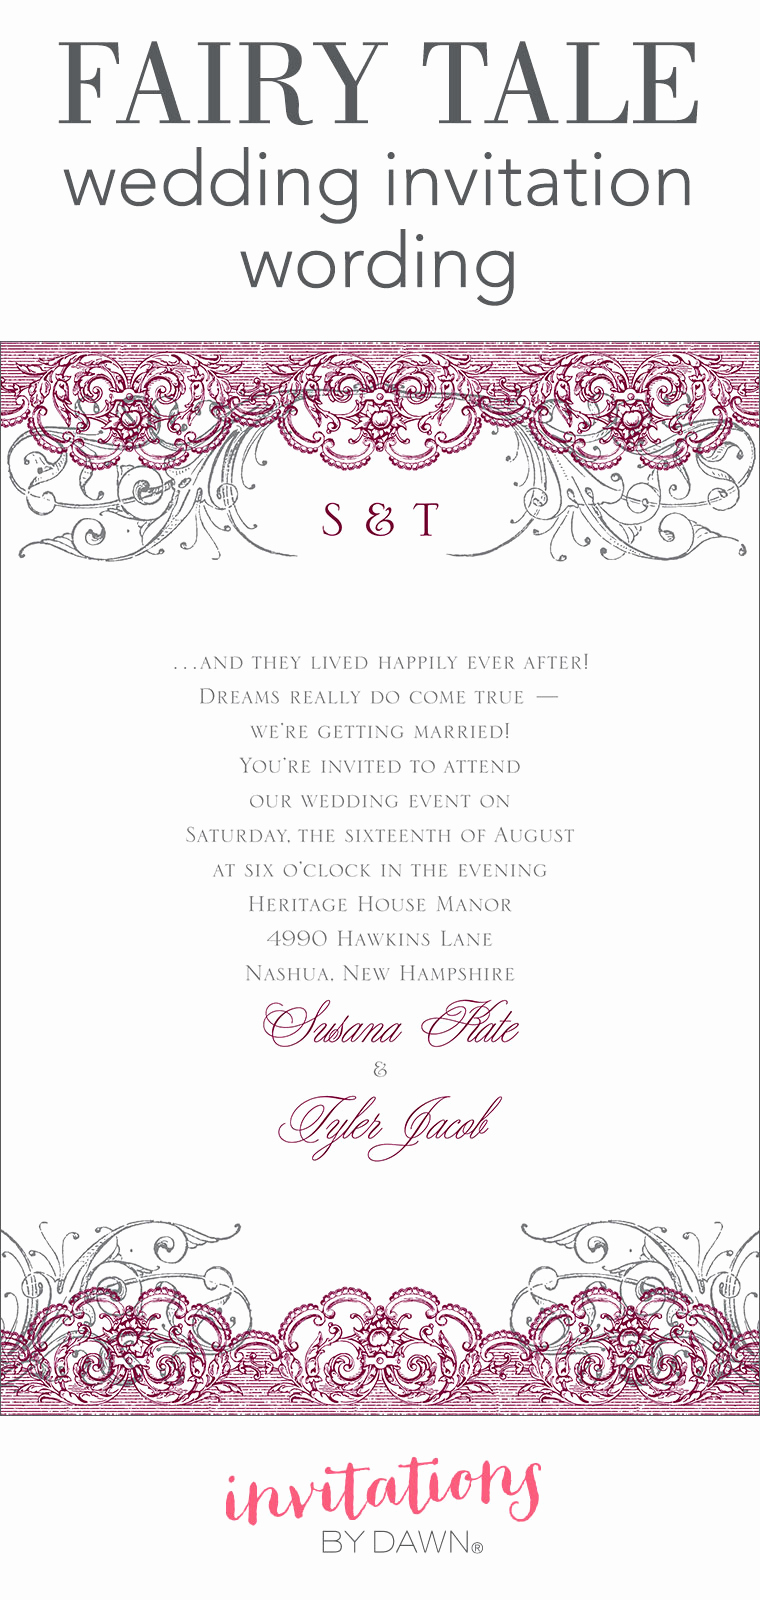 Wedding Welcome Party Invitation Wording Inspirational Fairy Tale Wedding Invitation Wording